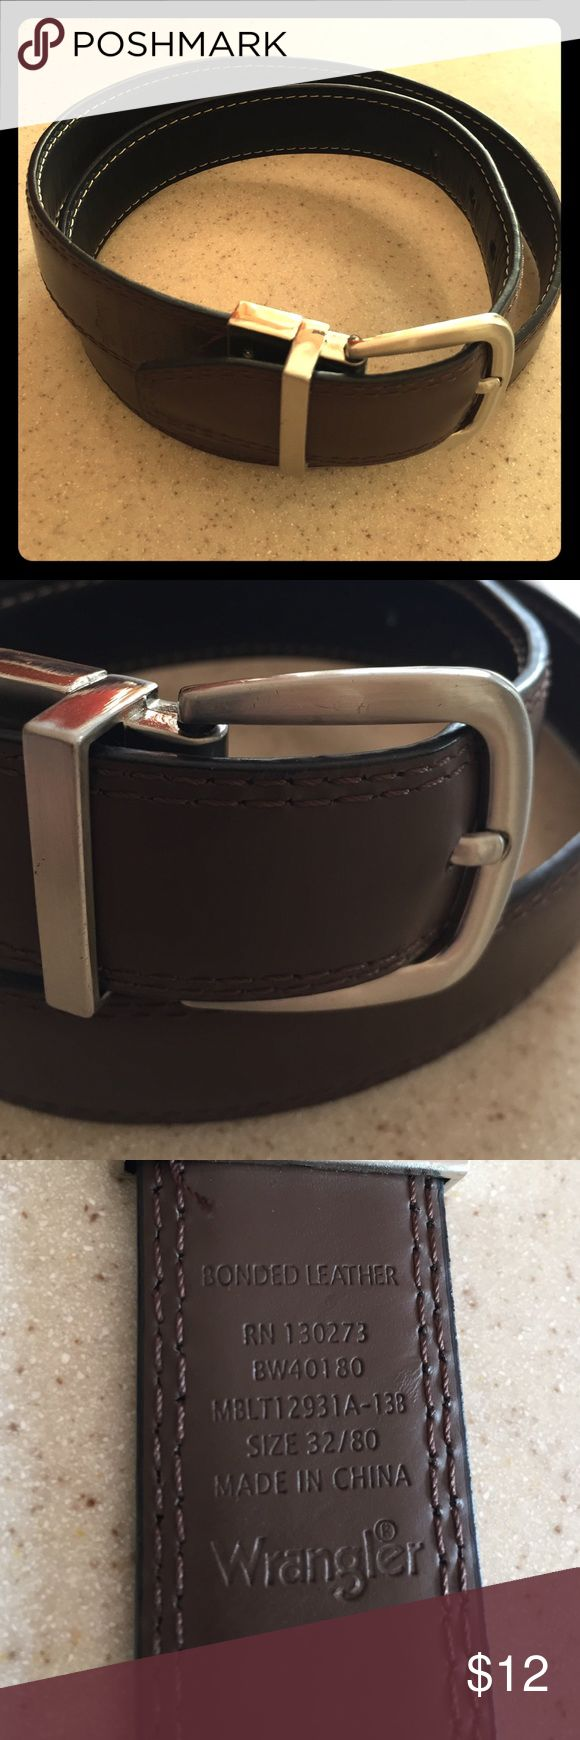 Men's leather reversible belt Reverses black or brown. Nice condition. Silver hardware. Wrangler Accessories Belts